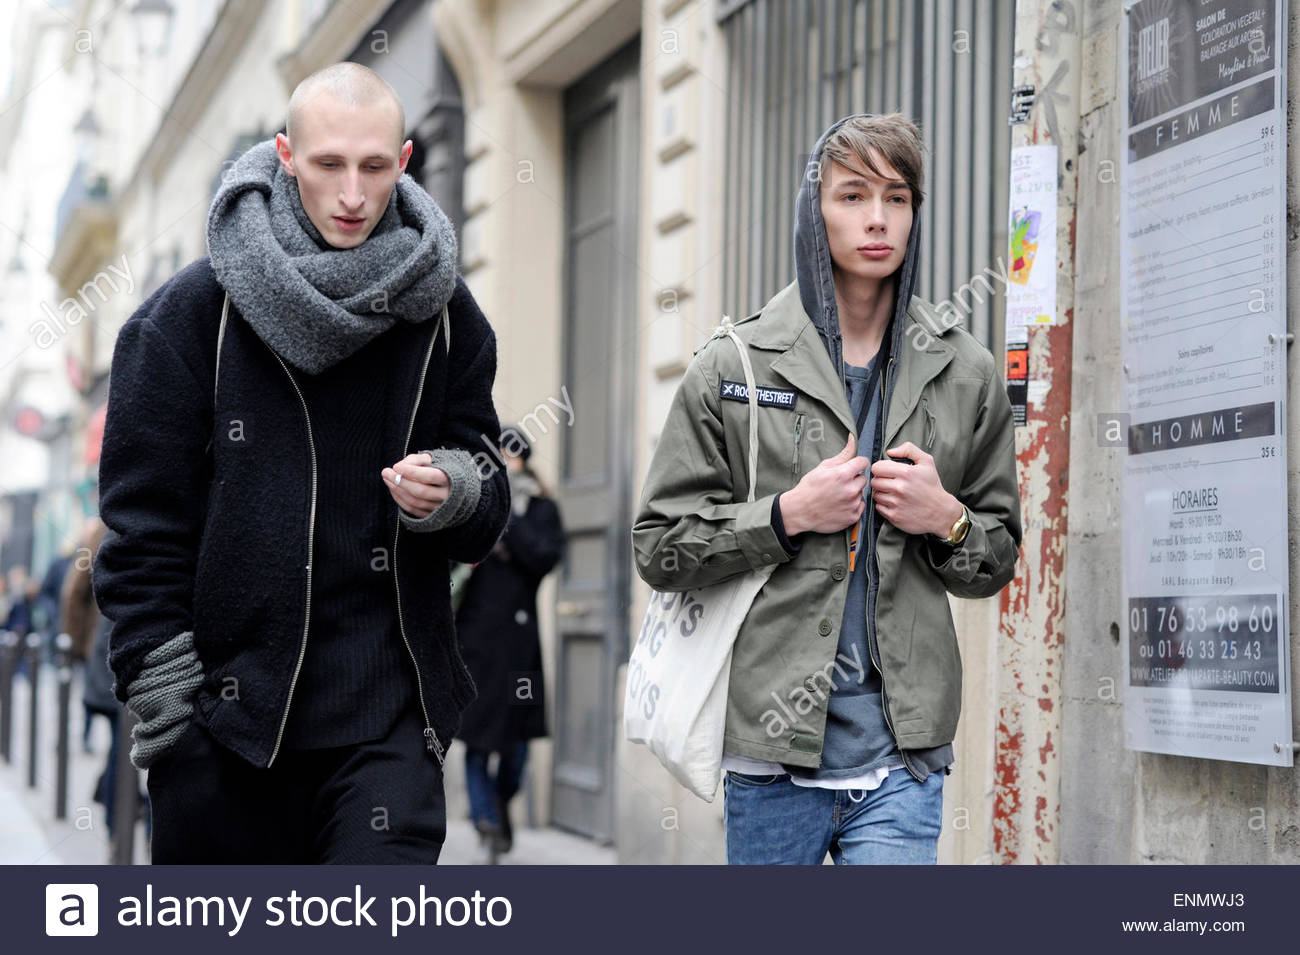 Male models after Lanvin mens ready to wear, at Paris Mens Fashion Week PFW FW15/16. - Stock Image